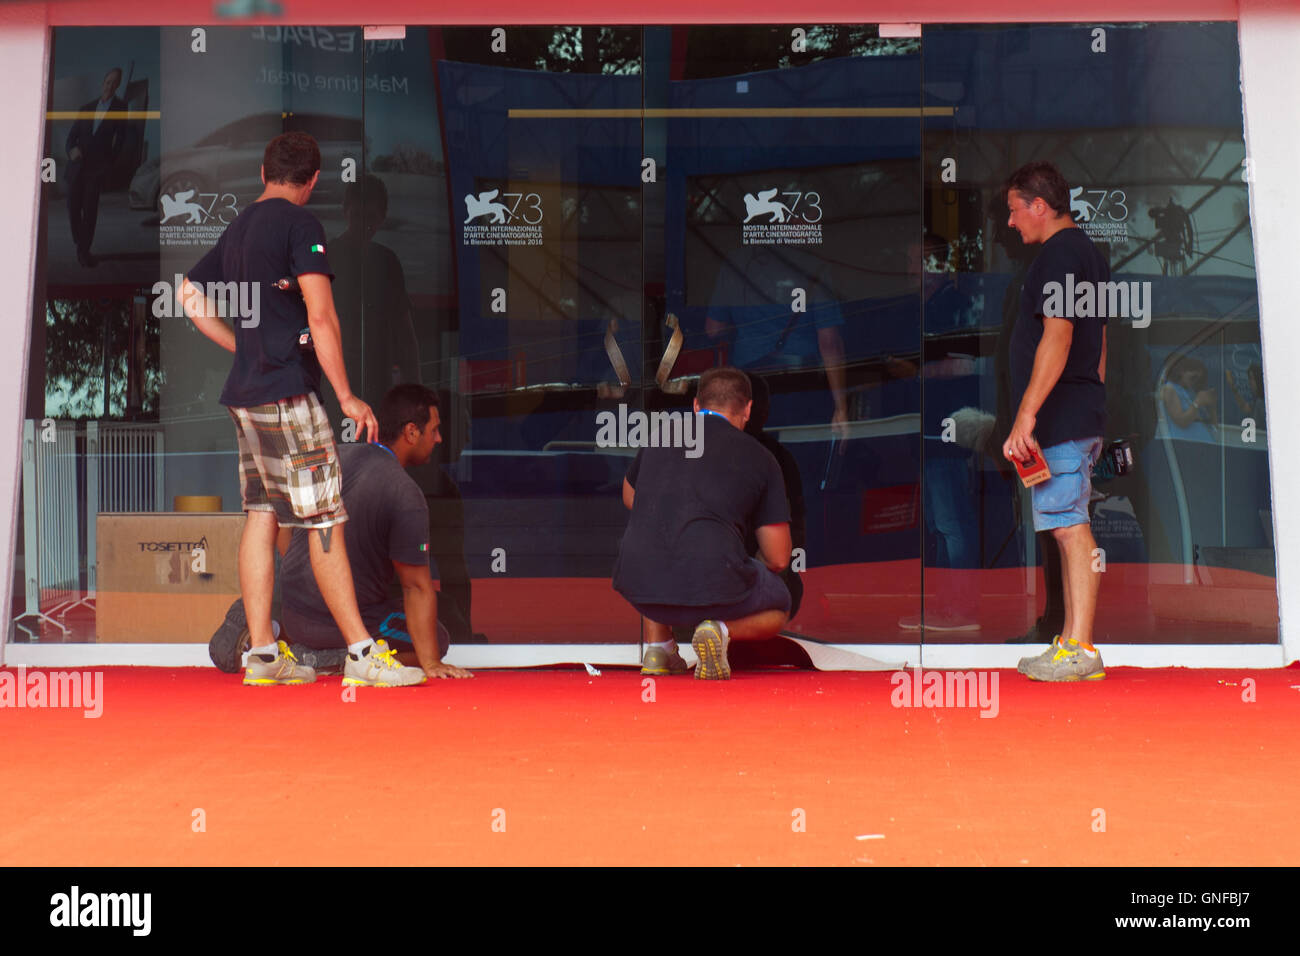 Venice, Italy. 30th August, 2016. Workers finish to prepare the area of the red carpet of the 73rd Venice Film Festival. - Stock Image